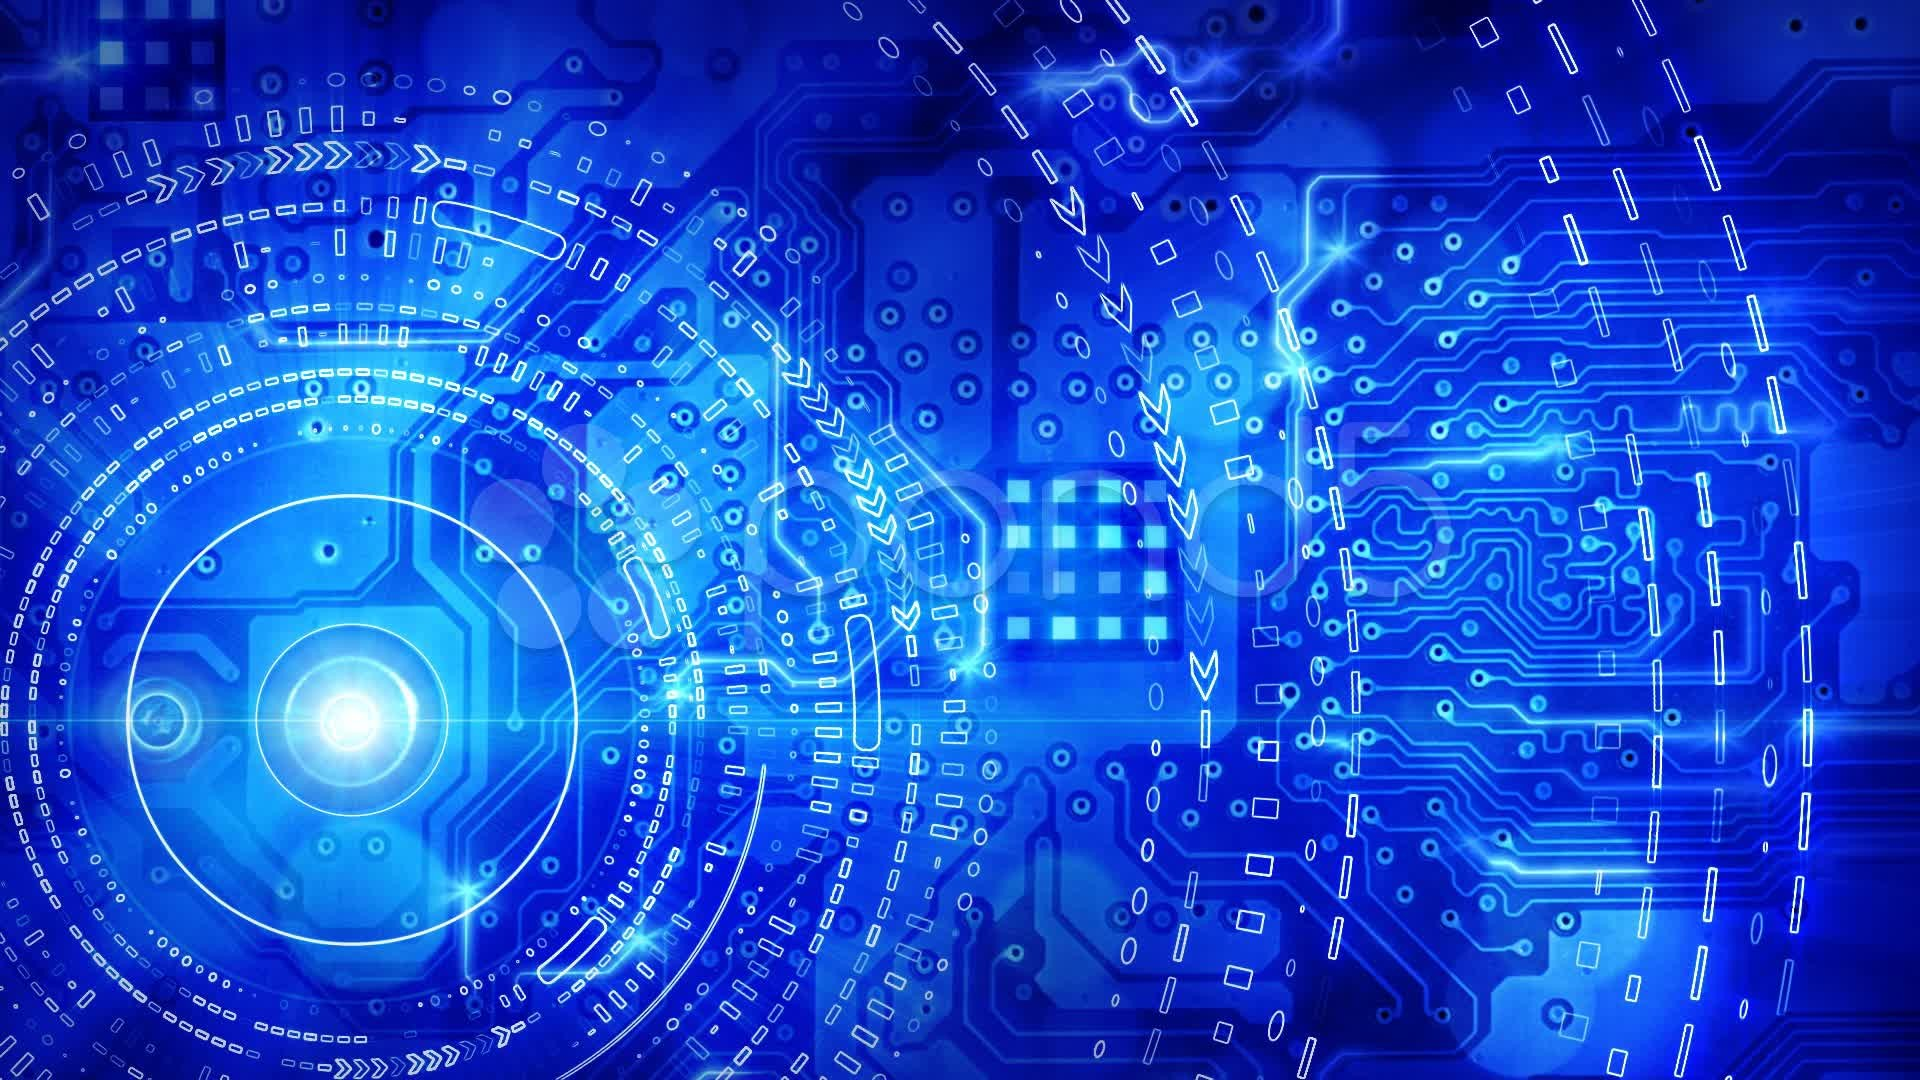 circuit board wallpapers hd (63 images)1920x1080 blue computer circuit board background loop stock video 10686486 hd